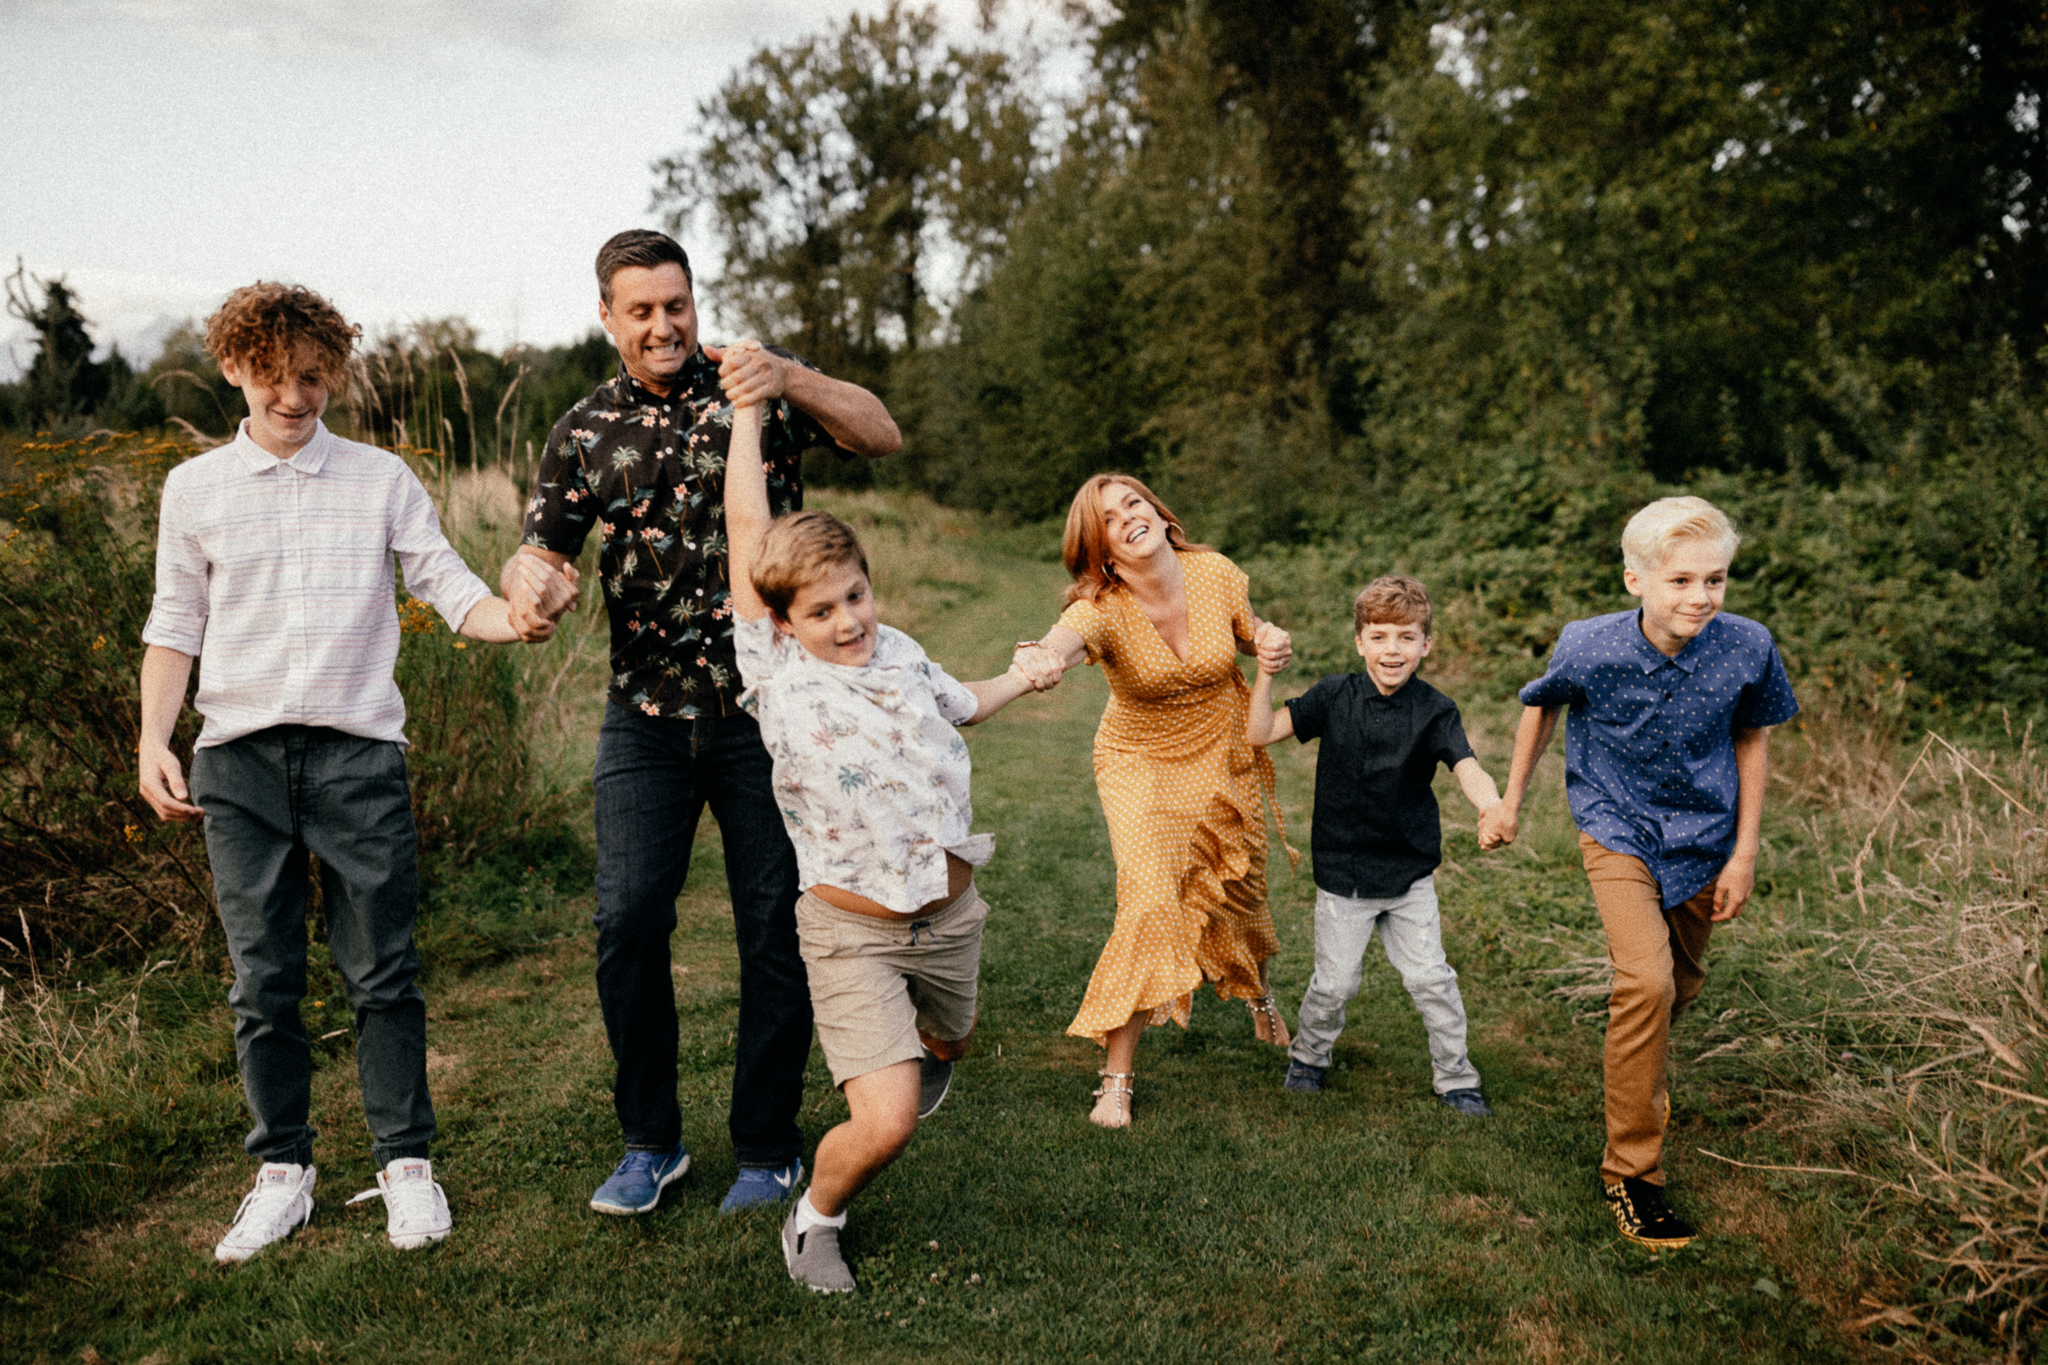 Mom, dad, and four sons walking through the grass and being silly together.